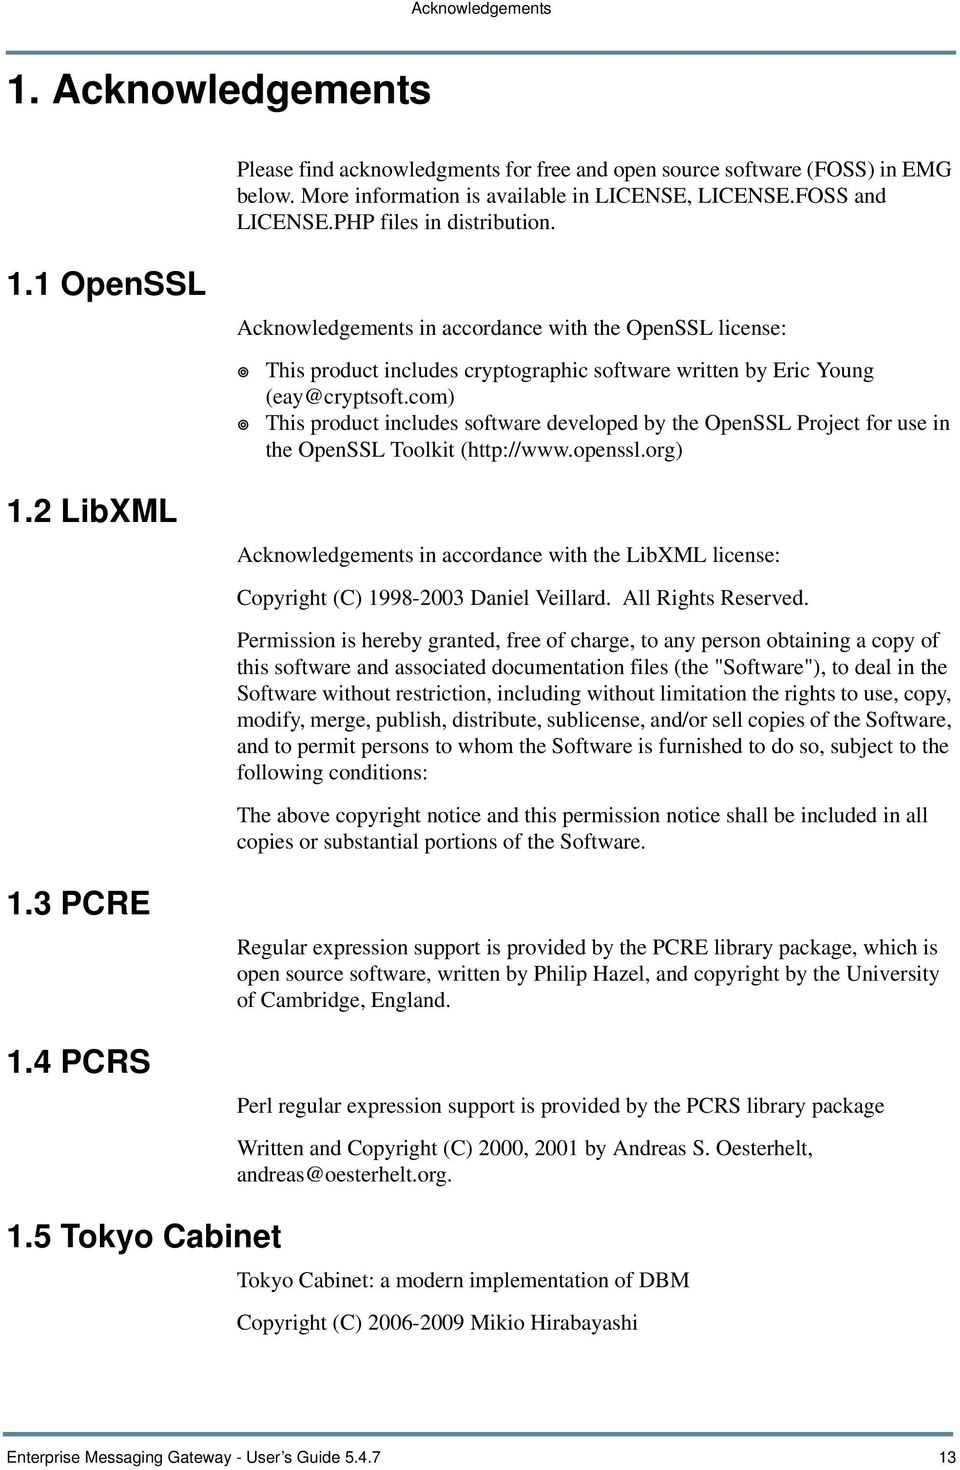 4 PCRS Acknowledgements in accordance with the OpenSSL license: This product includes cryptographic software written by Eric Young (eay@cryptsoft.